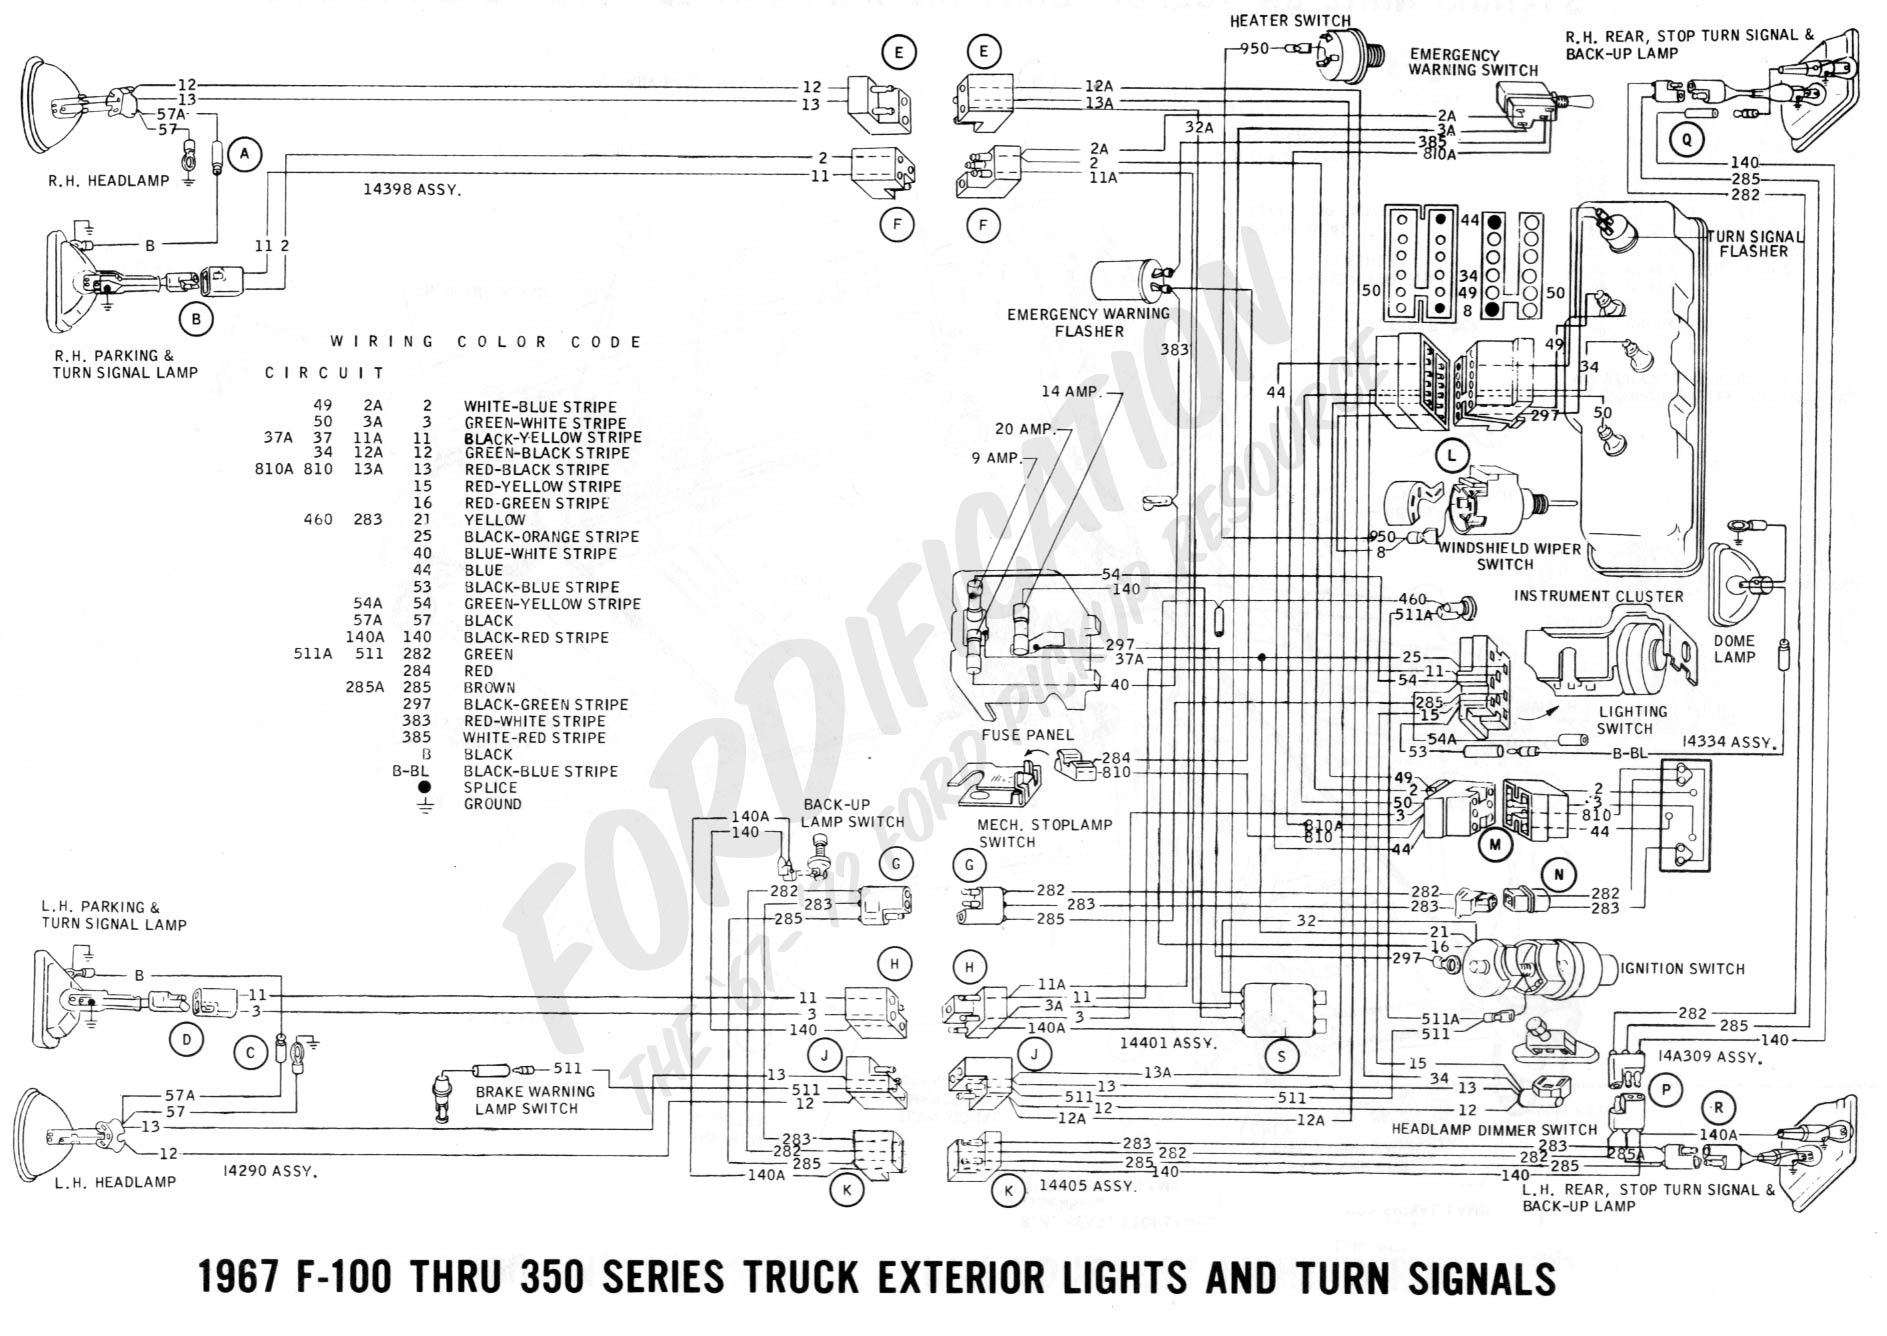 hight resolution of 1967 f 100 thru f 350 exterior lights and turn signals 02